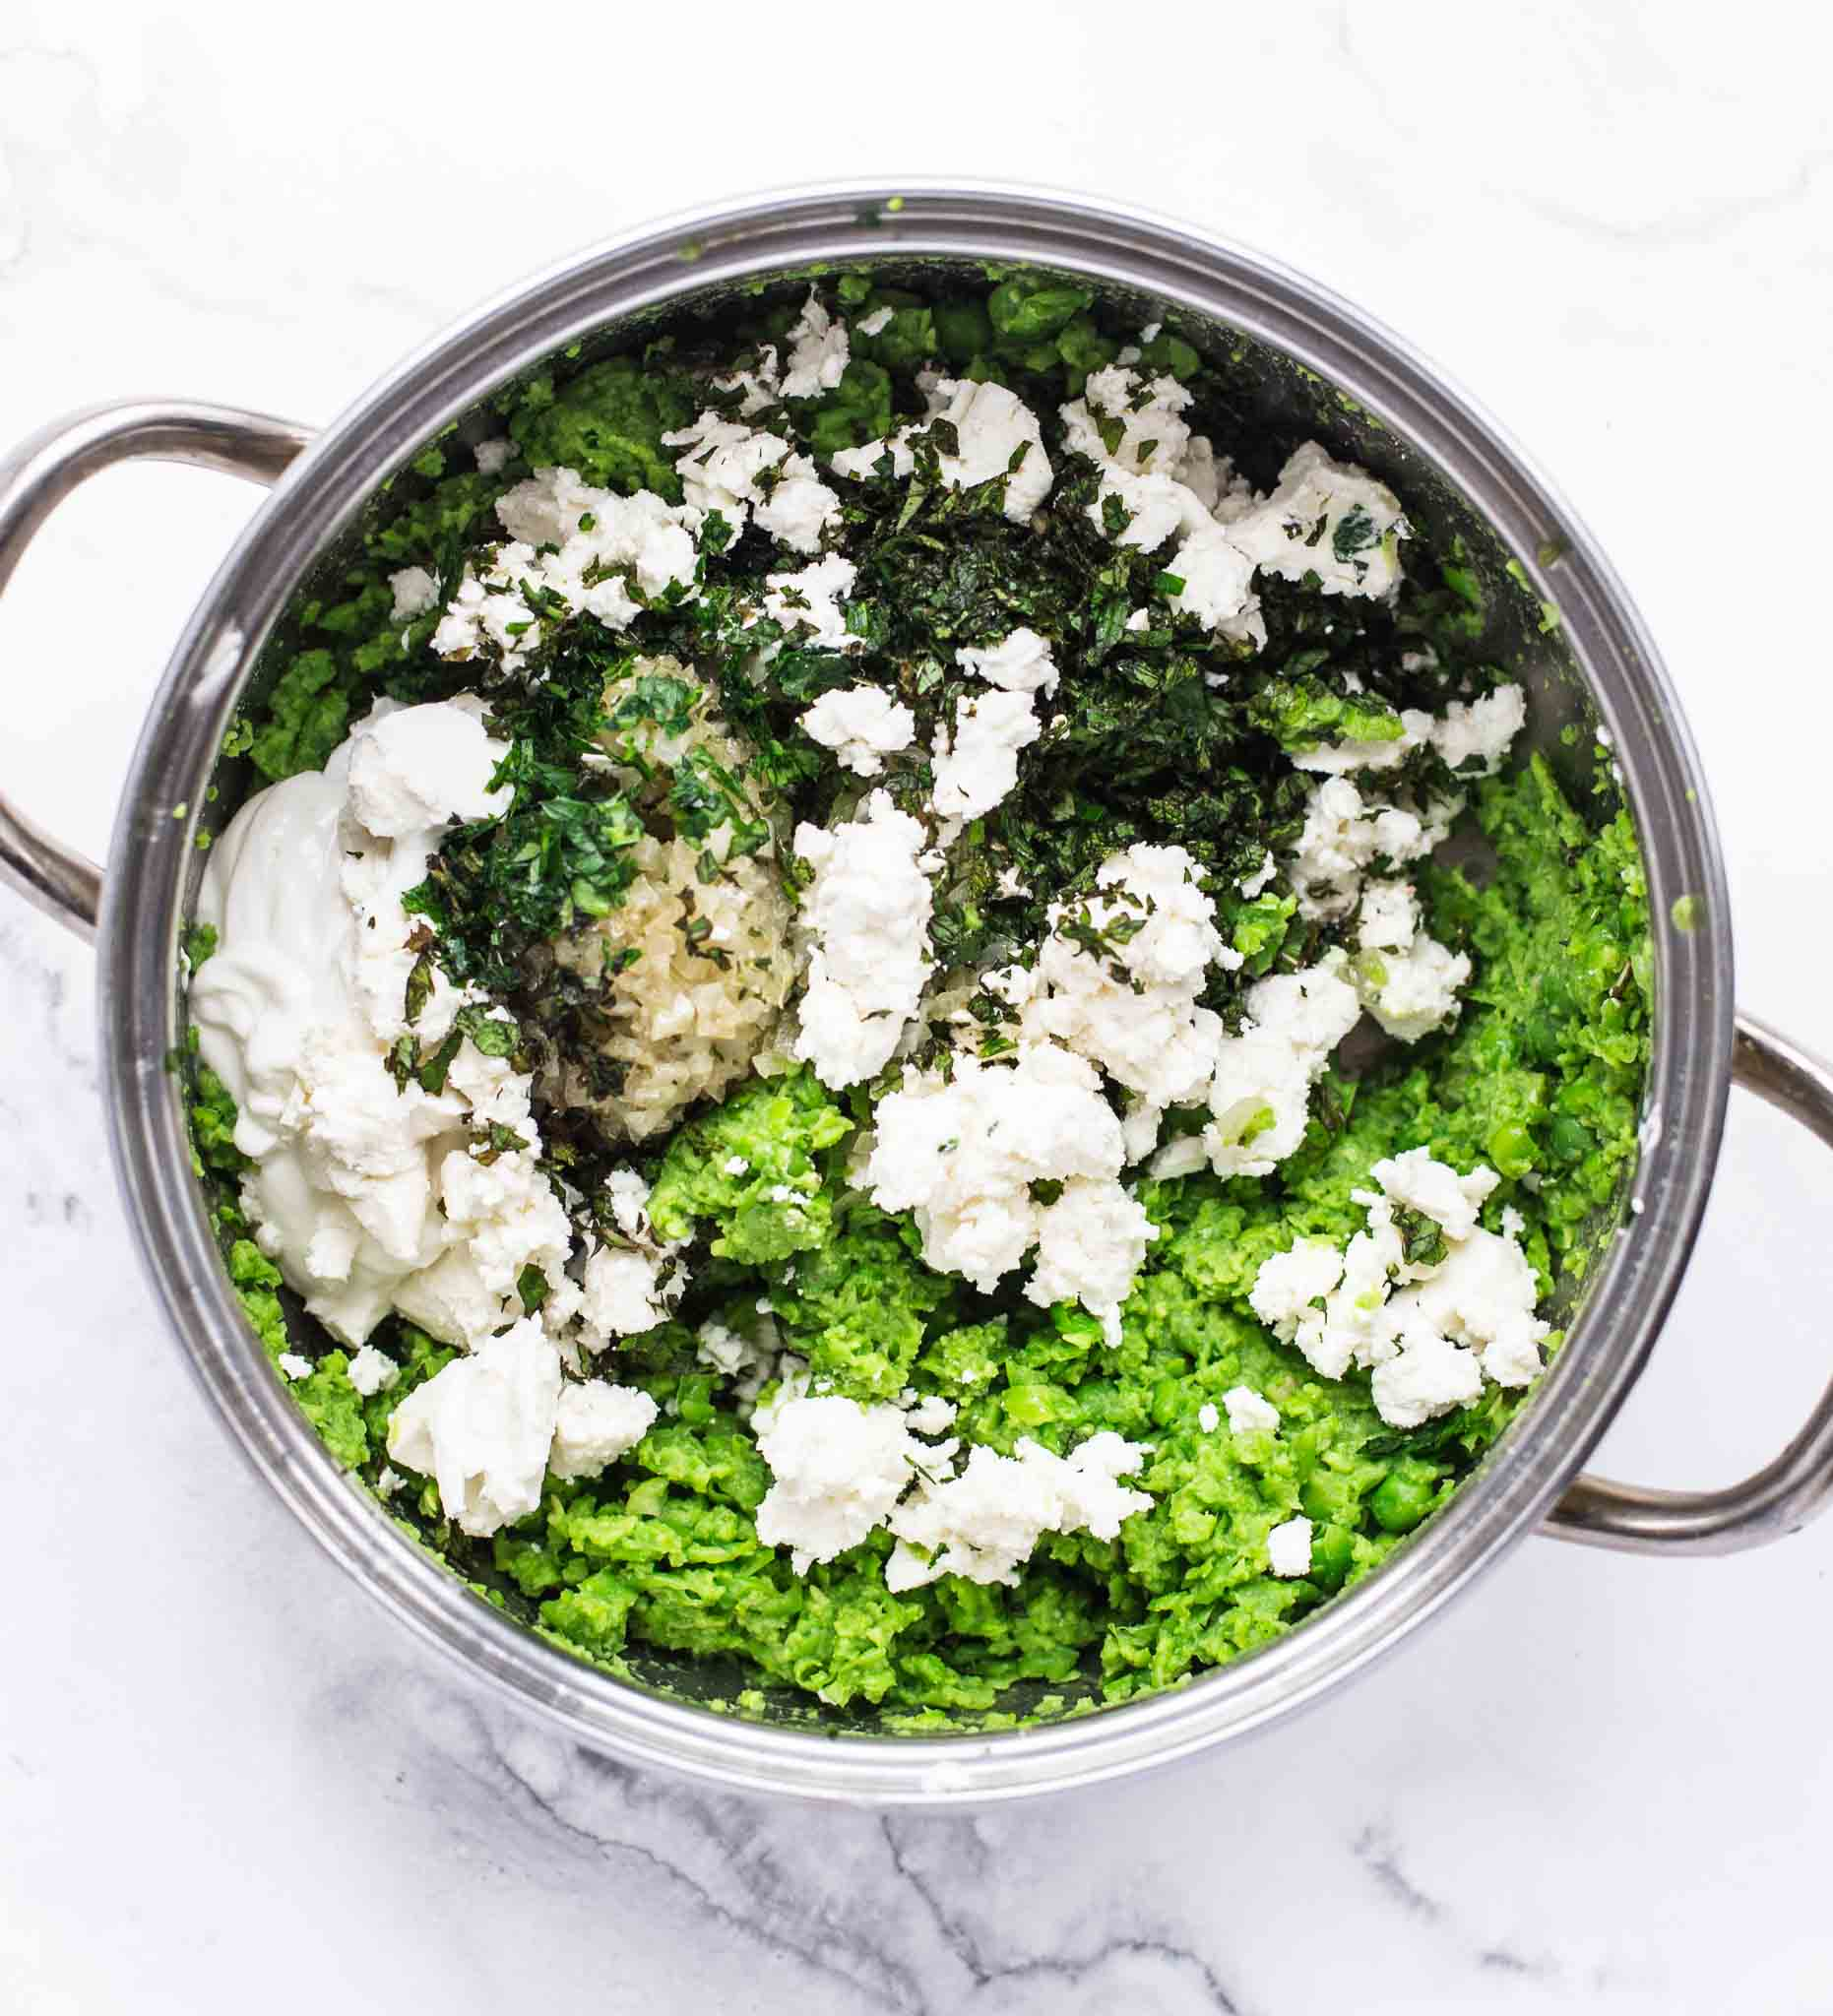 This pea and mint dip for chips recipe will become your new favourite dip for chips and all other crispy bits.